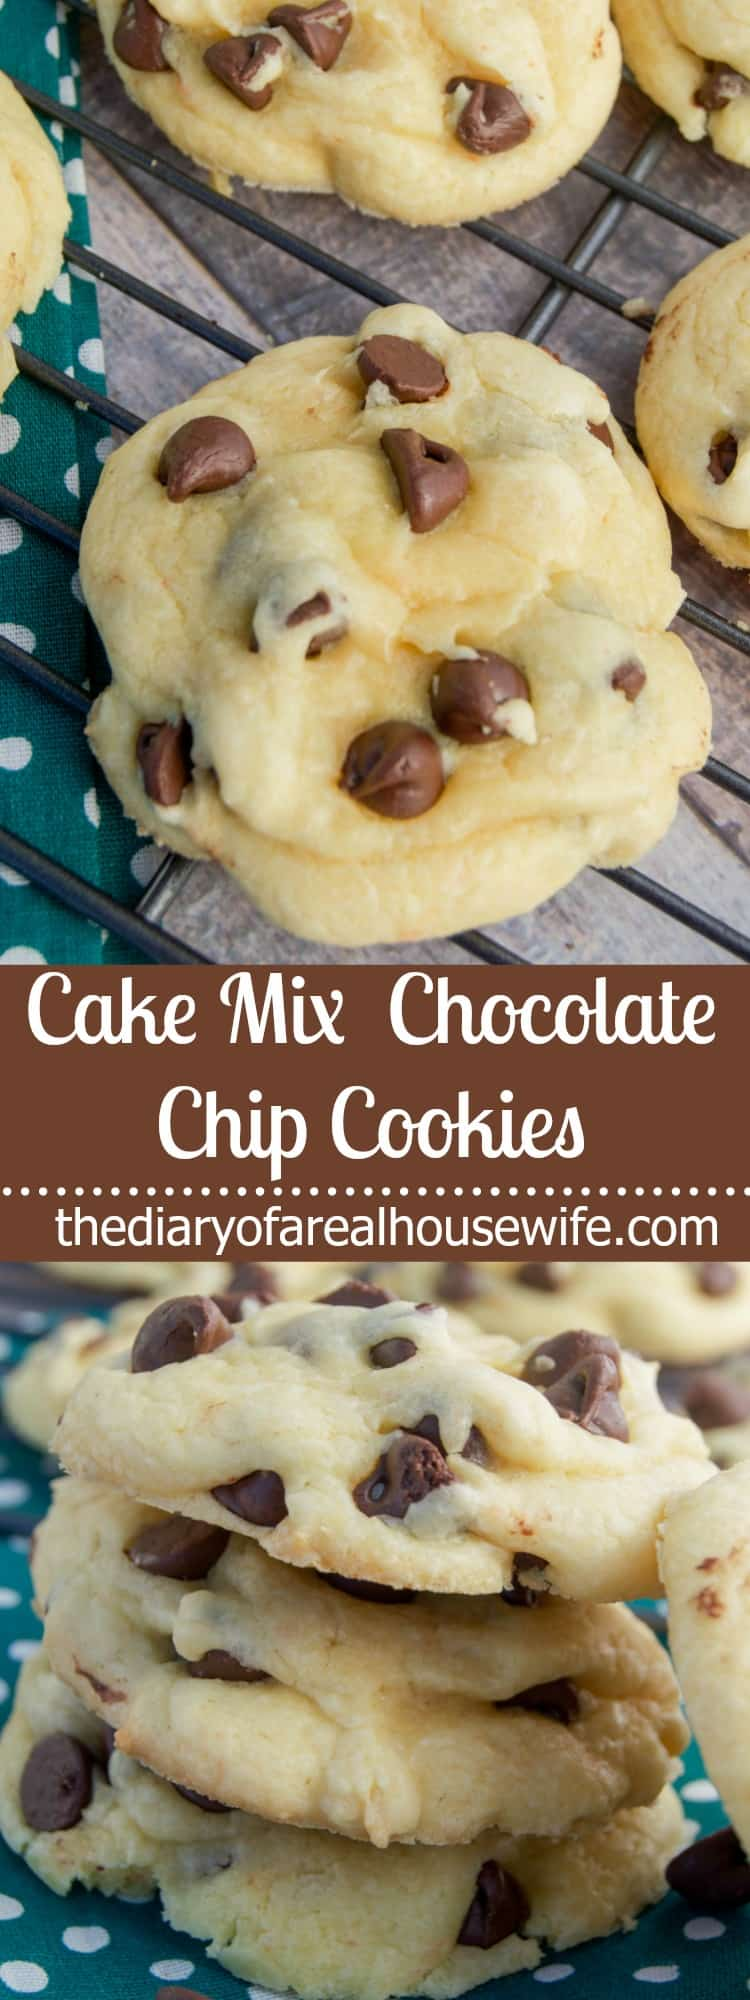 Cake Mix Chocolate Chip Cookies The Diary Of A Real Housewife